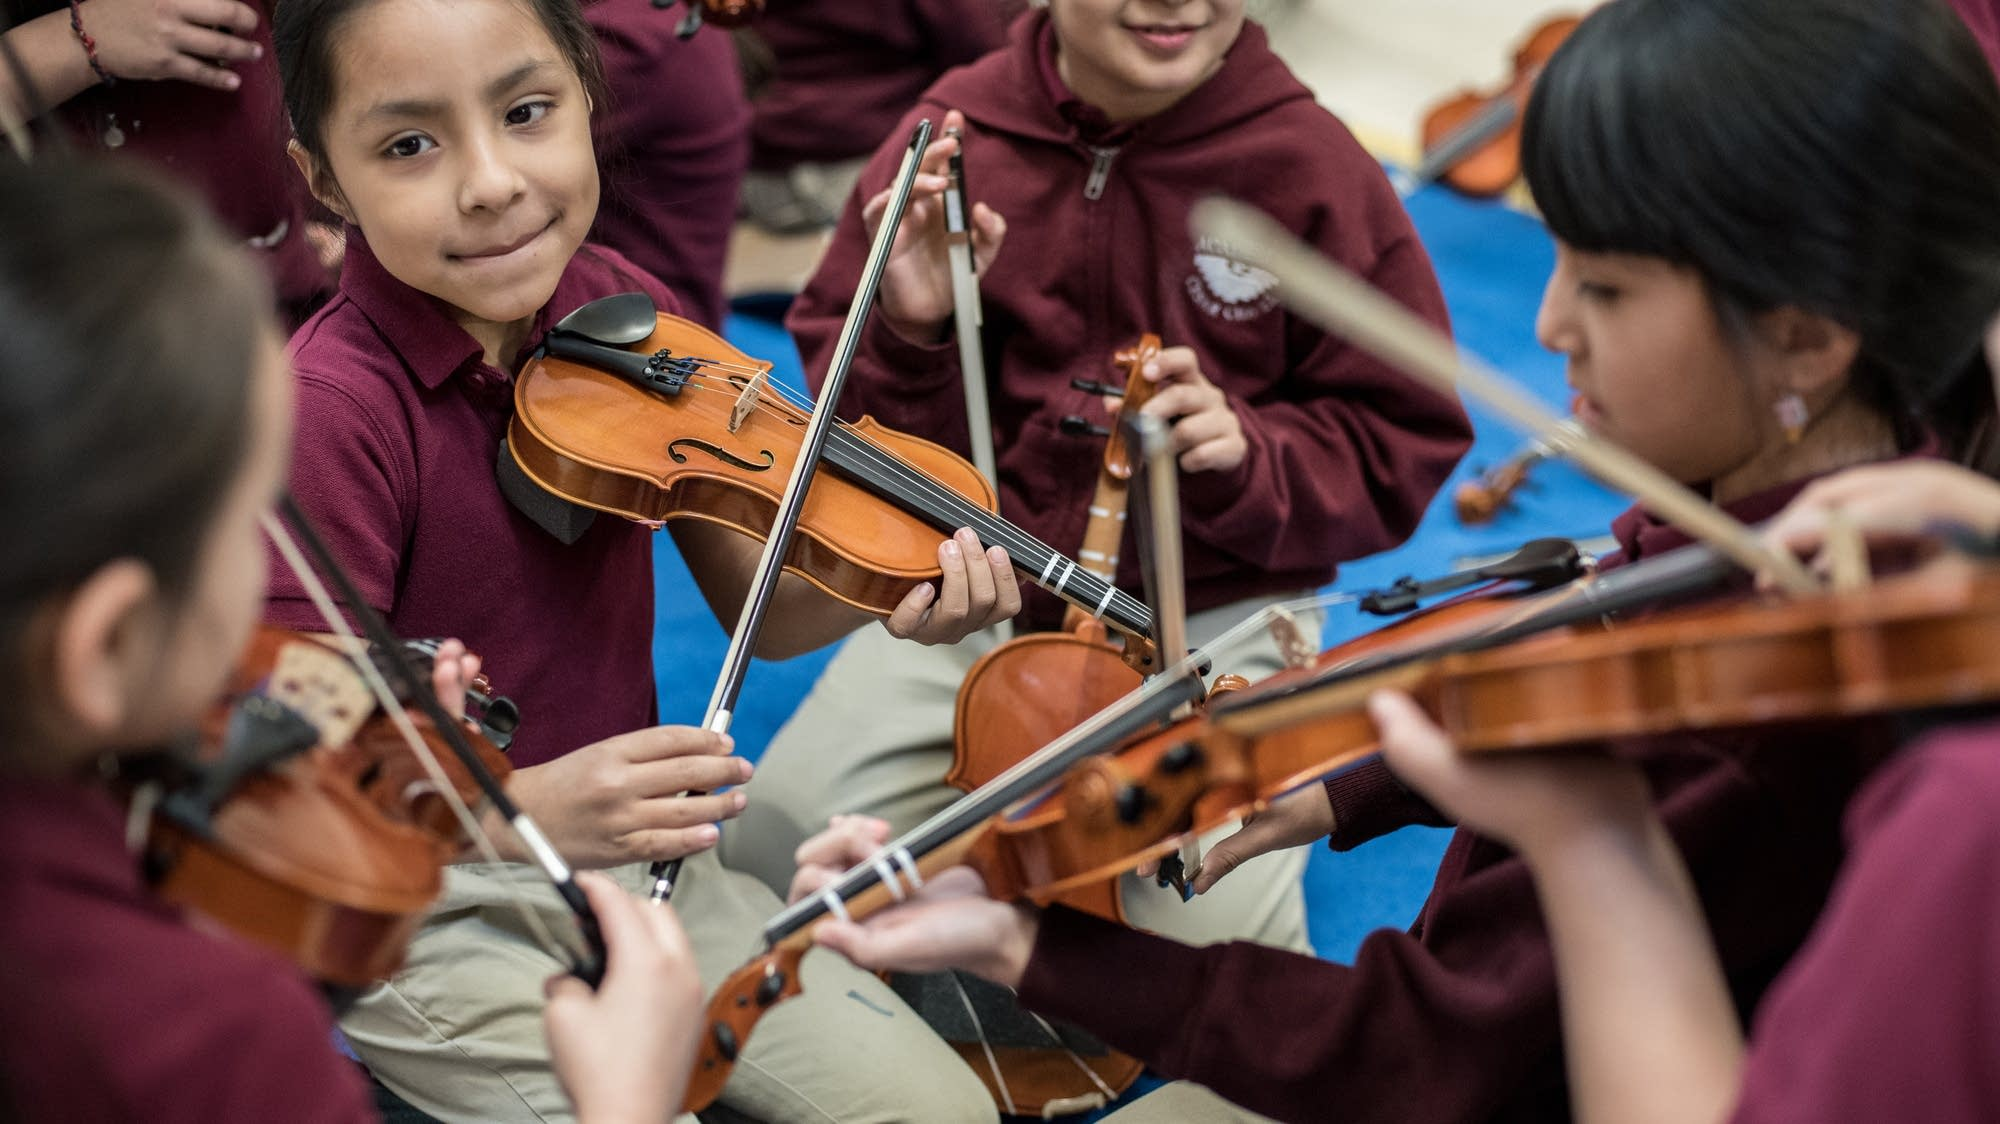 Ivanna Benitez, 7, practices her violin with her friends before class.